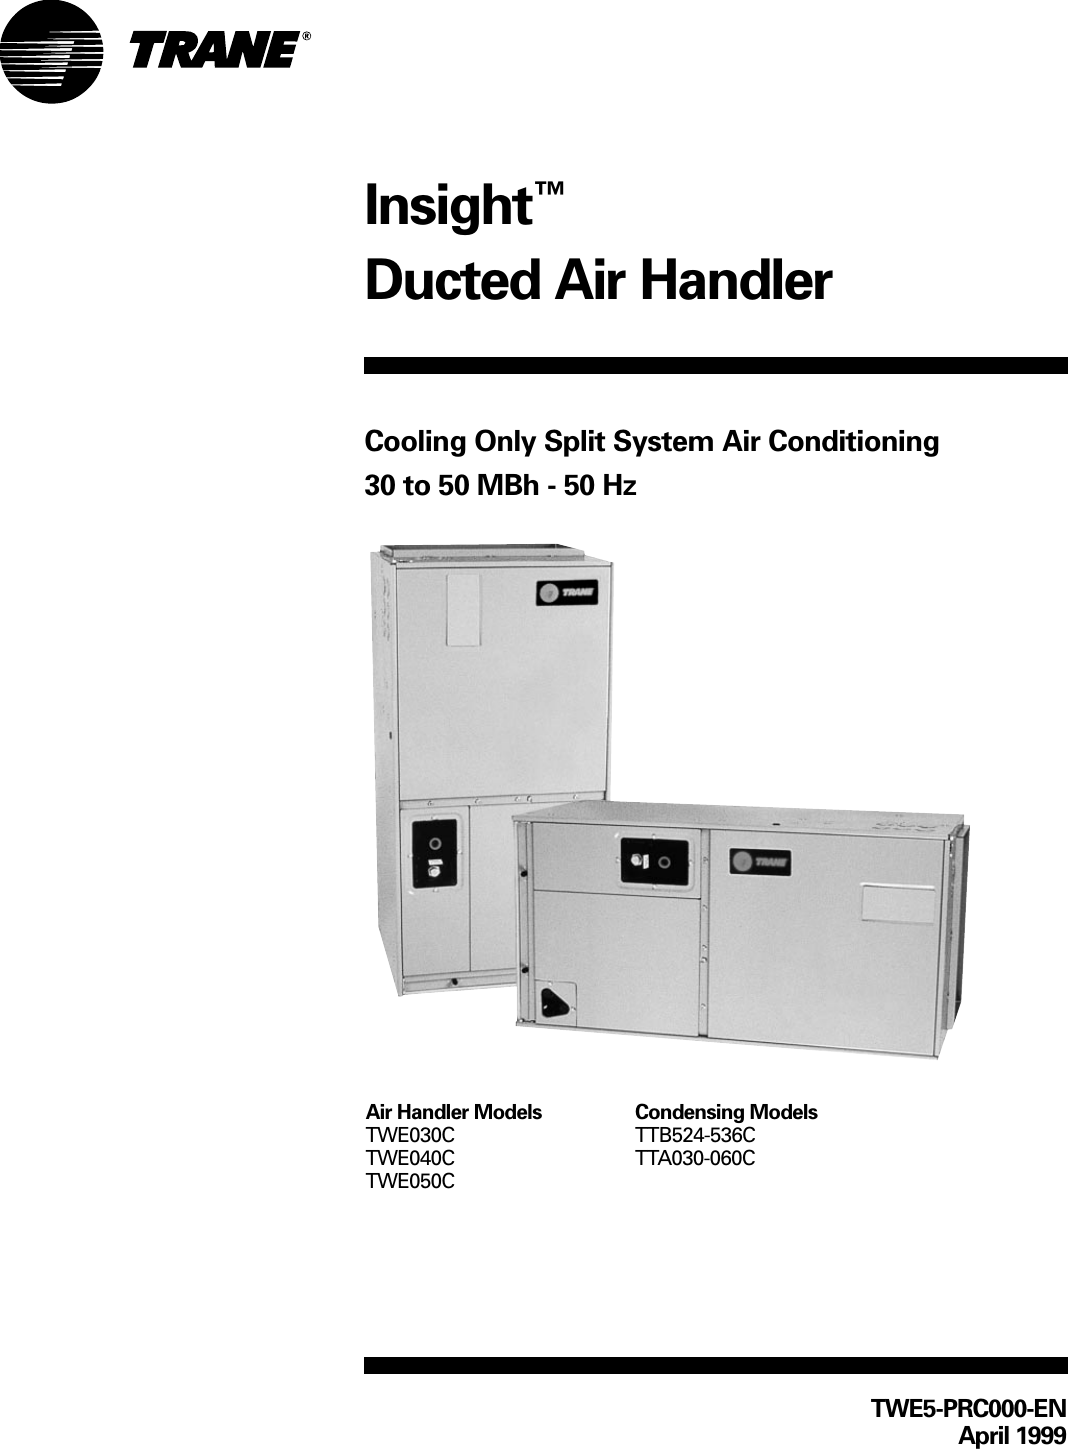 Trane Twe030c Insight  U2122 Ducted Air Handler Cooling Only Split System Conditioning   30 To 50 Mbh